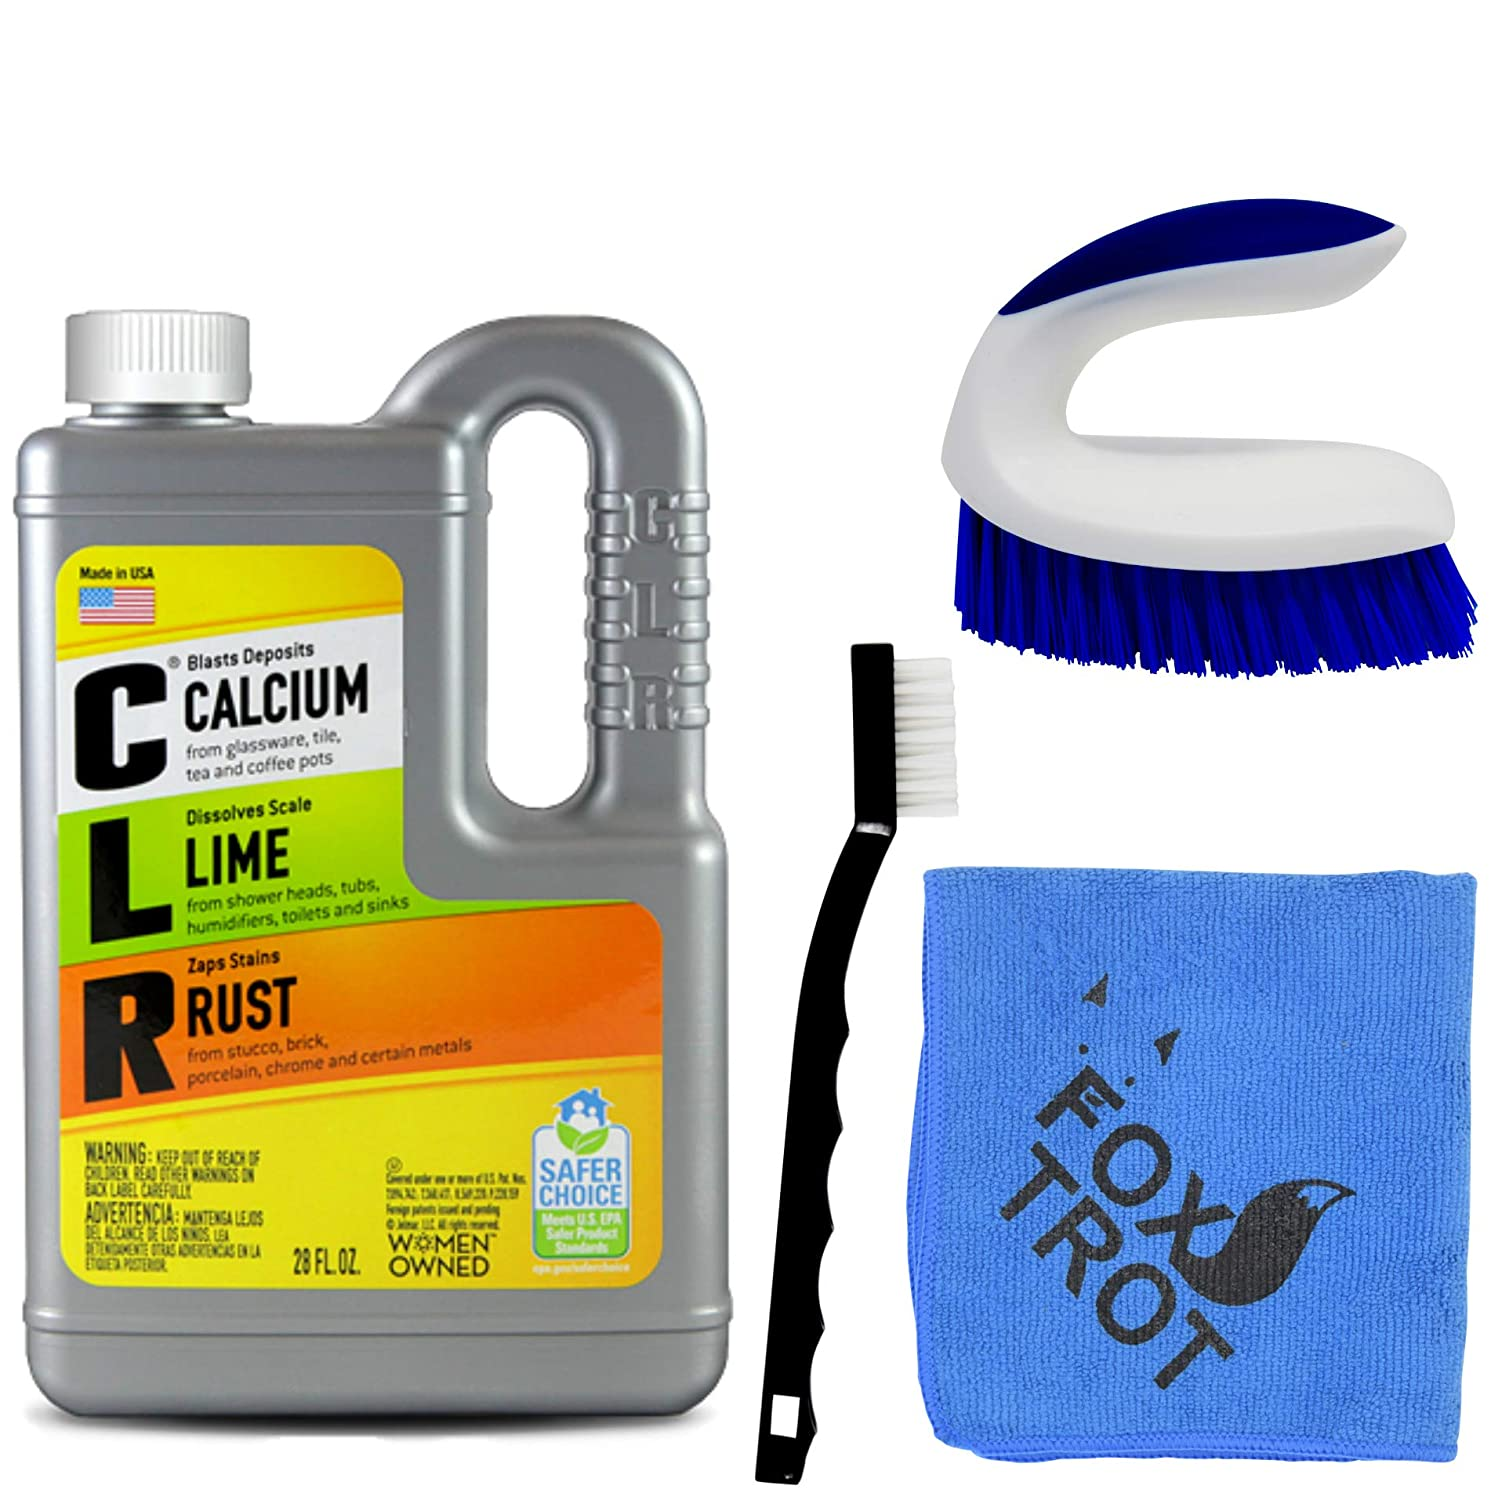 CLR Complete Cleaning Kit, Calcium Lime and Rust Removal System Includes 28oz CLR Bottle, 1 Handheld Heavy Duty Brush, 1 EZ Grip Thin Tip Vinyl Brush, 1 Professional Grade Foxtrot TM Microfiber Towel Foxtrot Living